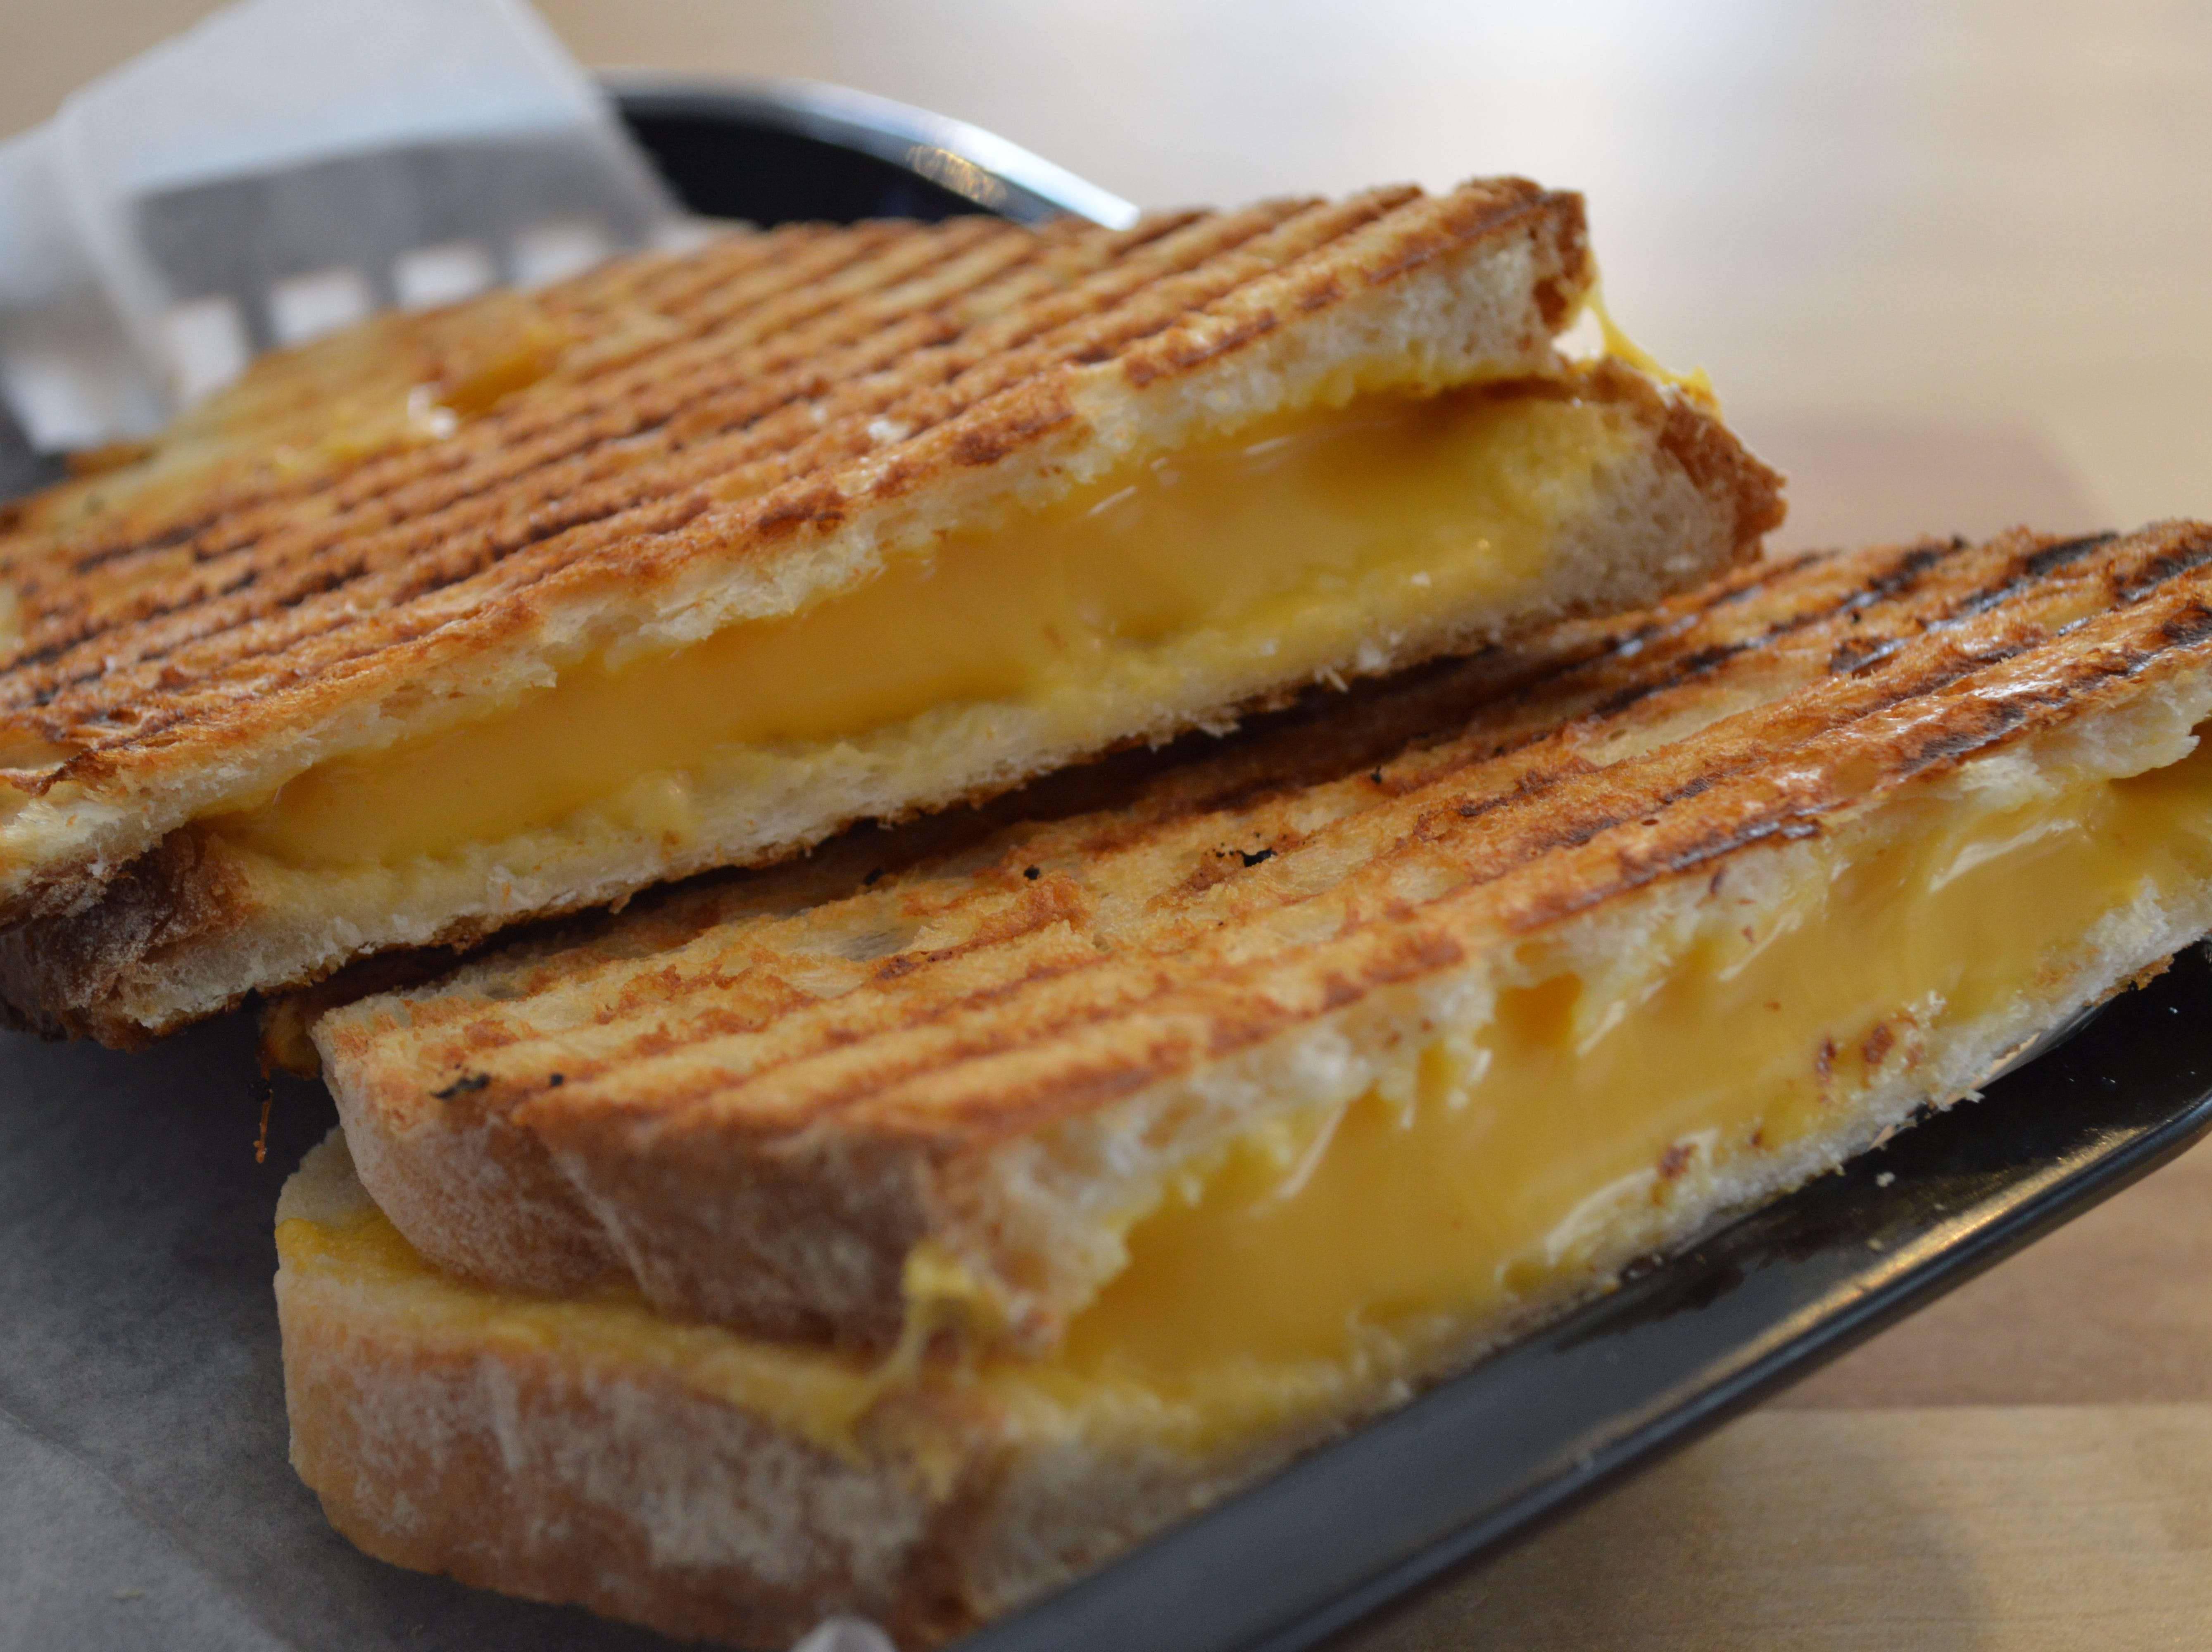 The most popular panini at 5Points is the grilled cheese for $4.